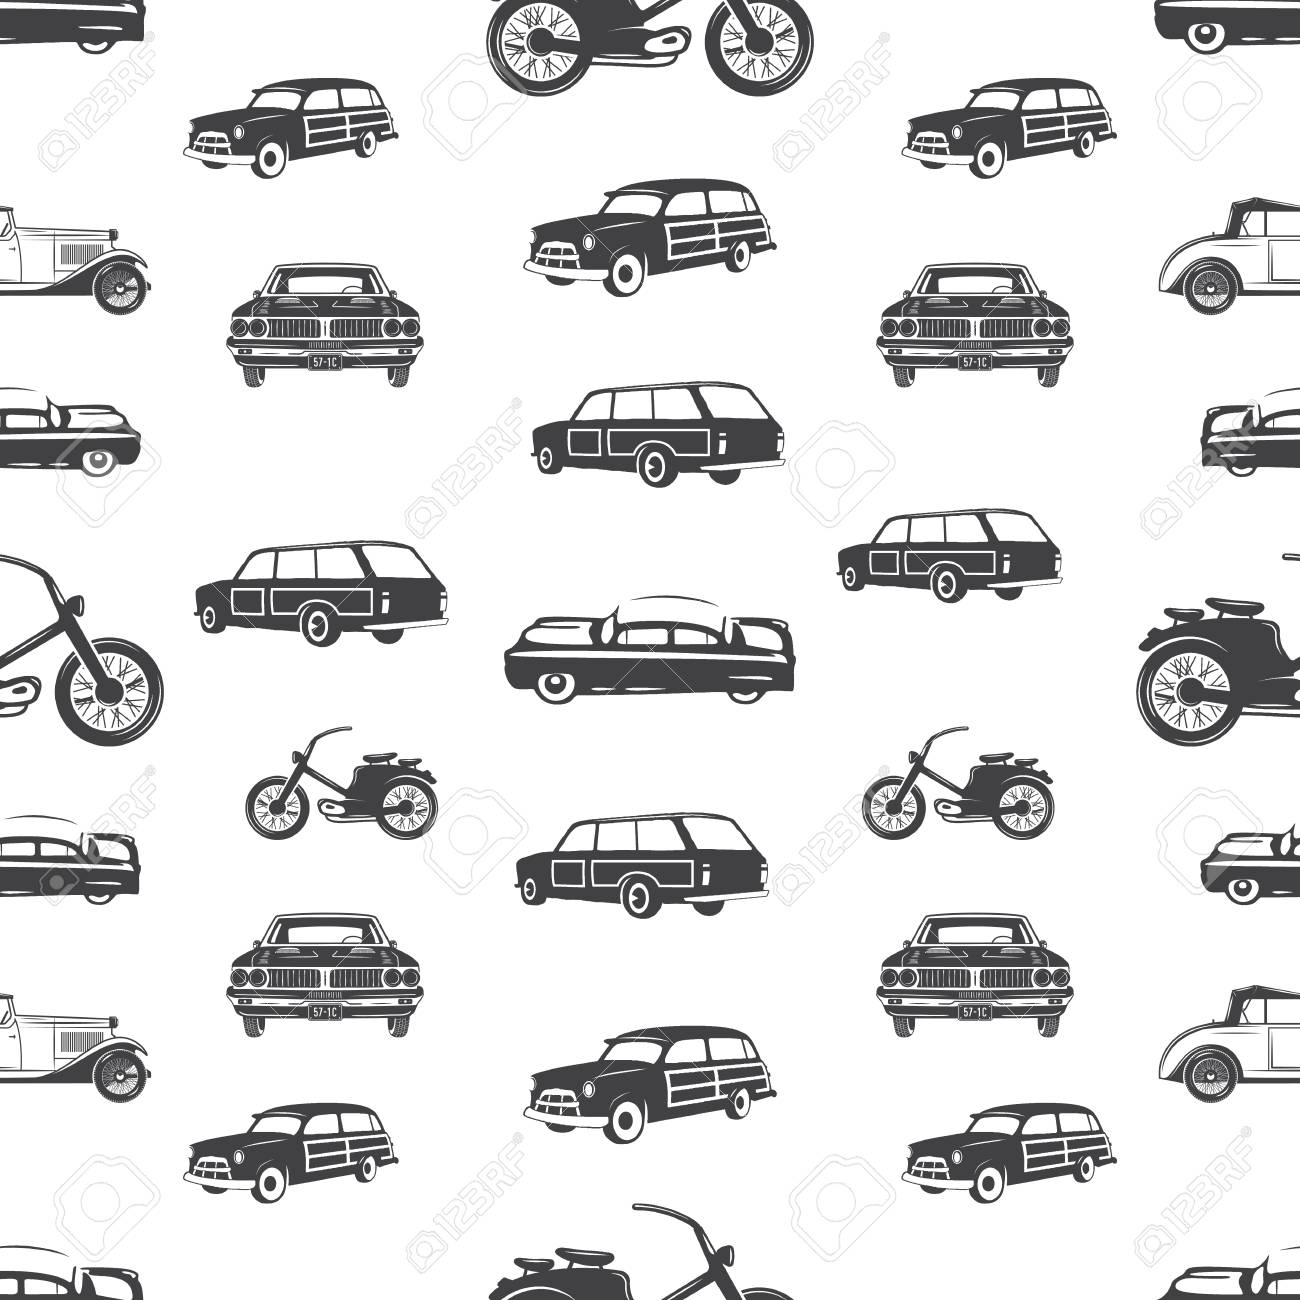 Surfing transport seamless pattern. Retro Surf car, motorcycle wallpaper background in monochrome style. Vintage hand drawn concept. Stock vector illustration isolated on white. - 105752691